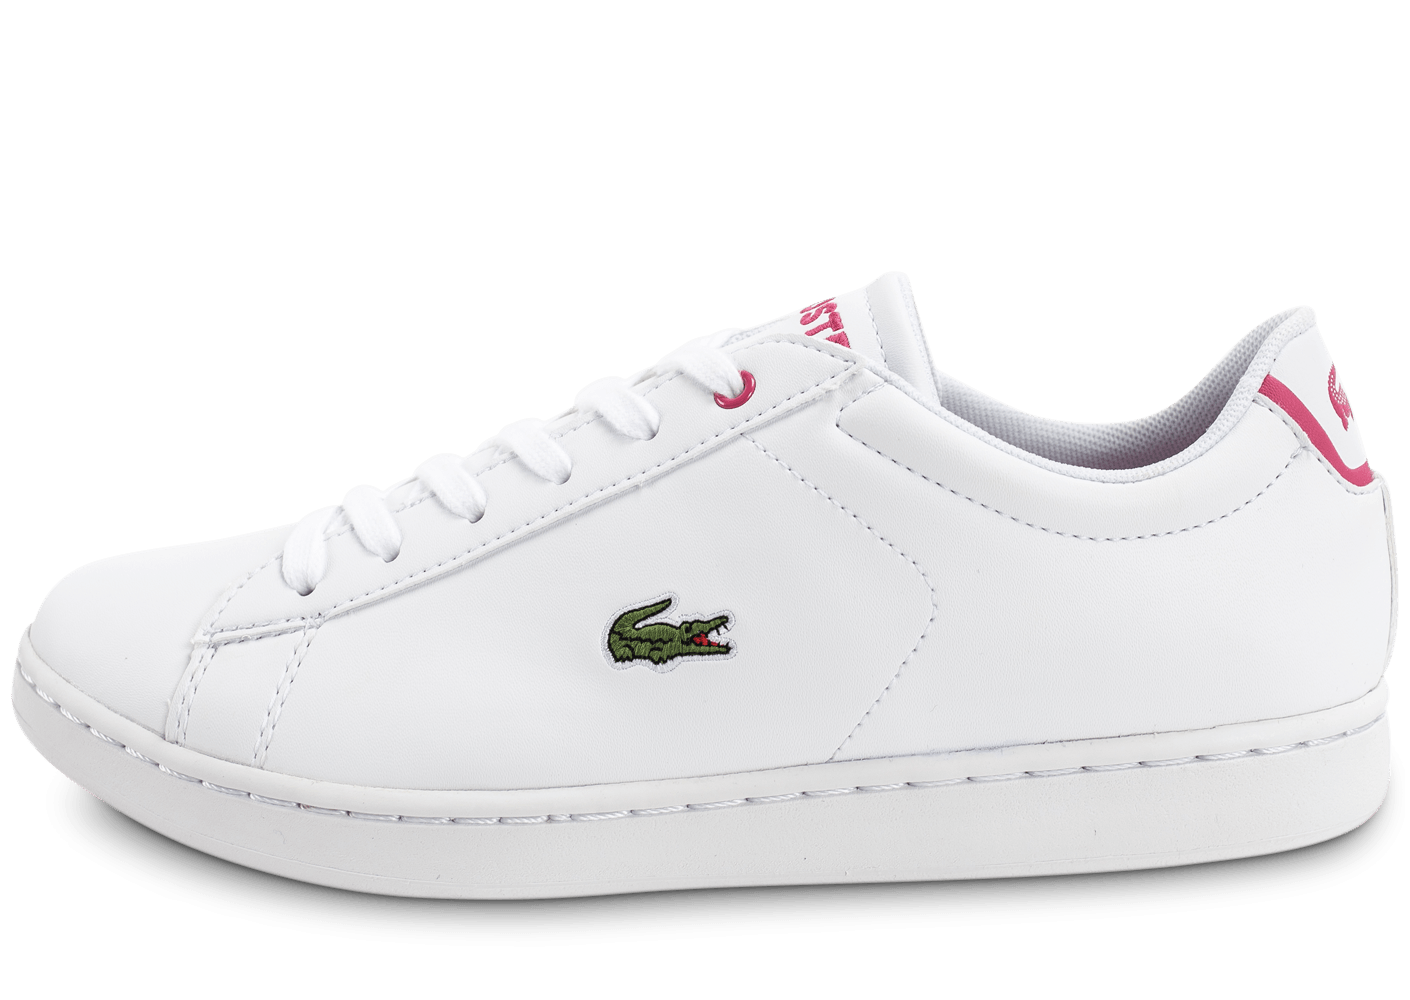 Chaussures Evo Carnaby Chausport Rose Et Blanche Lacoste q8nXz5